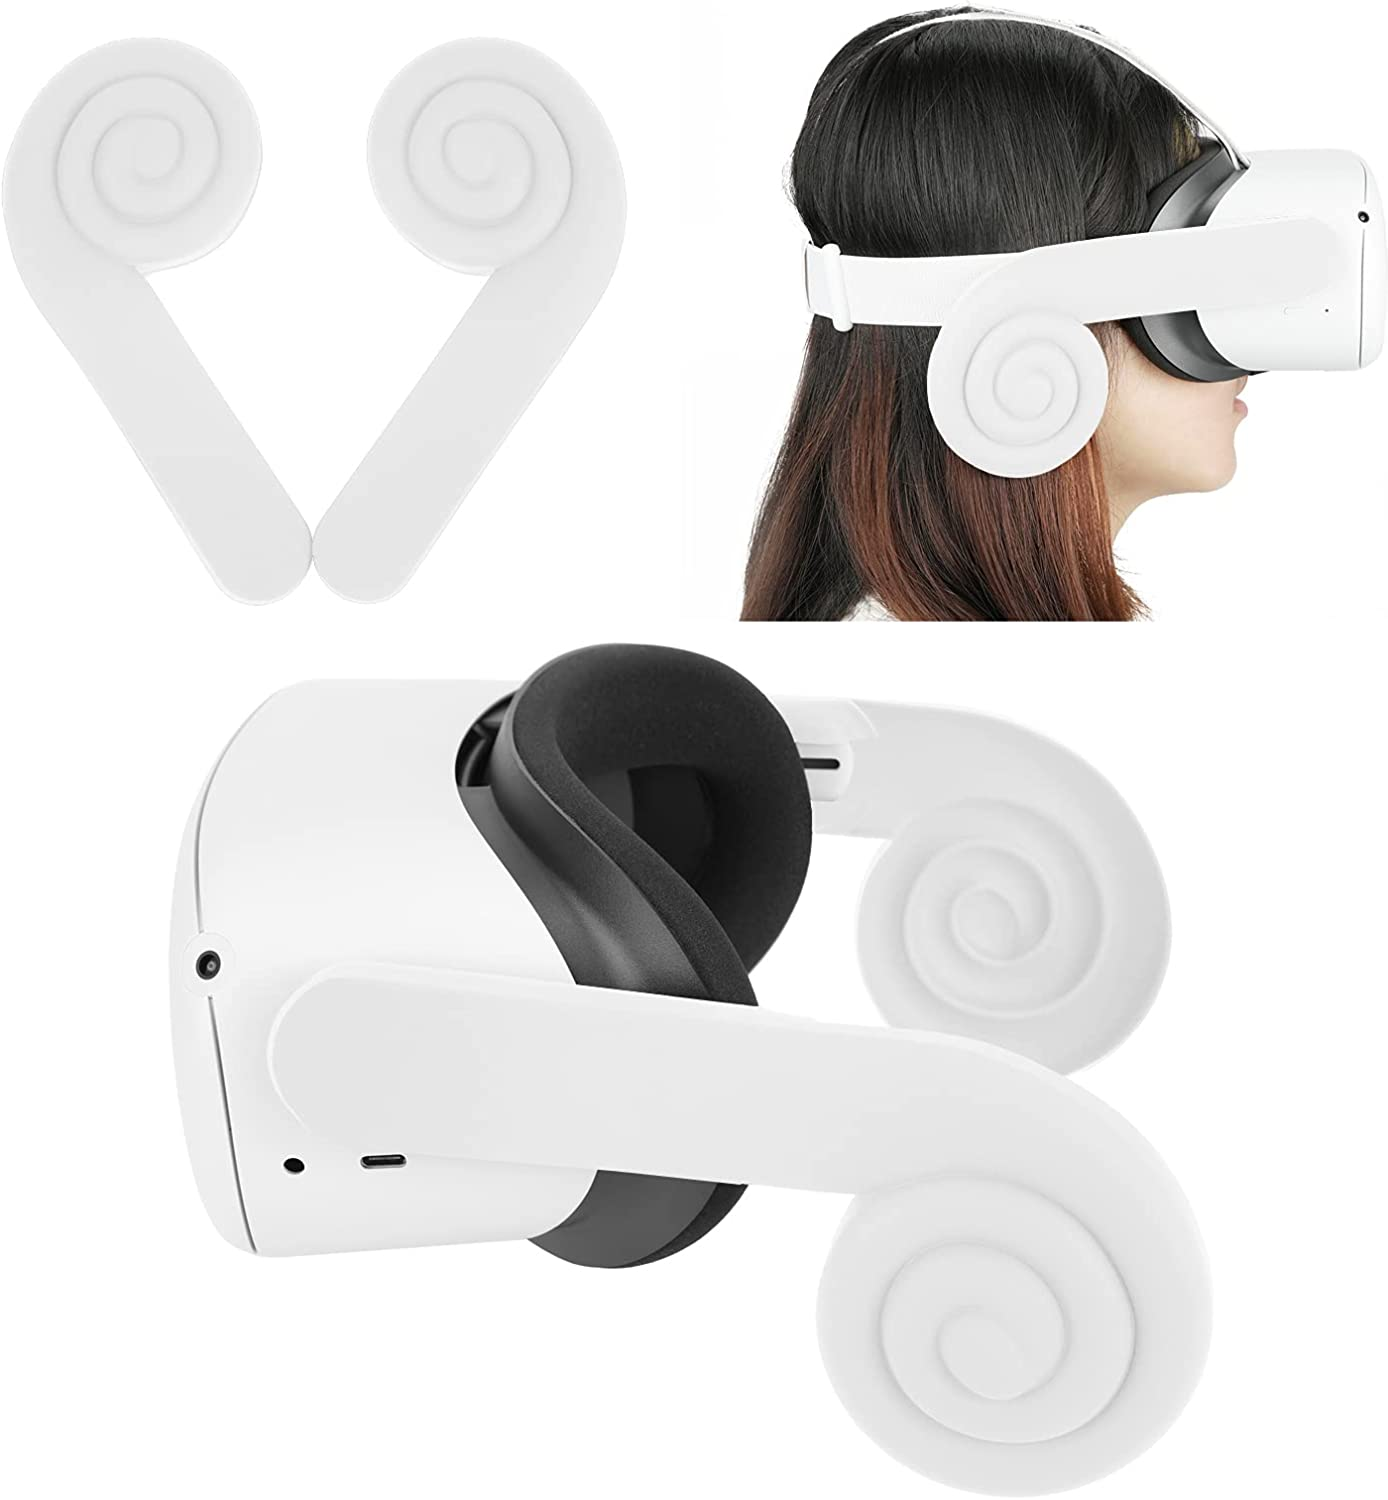 Earmuffs for Oculus Quest 2 Silicone Ear Cover for VR Headset Spiral Sound Amplification Cup OQ2 Earbuds Replacement Enhance Sound Effect Redirect Sound Reduce Sound Leakage Shield from Ambient Noise